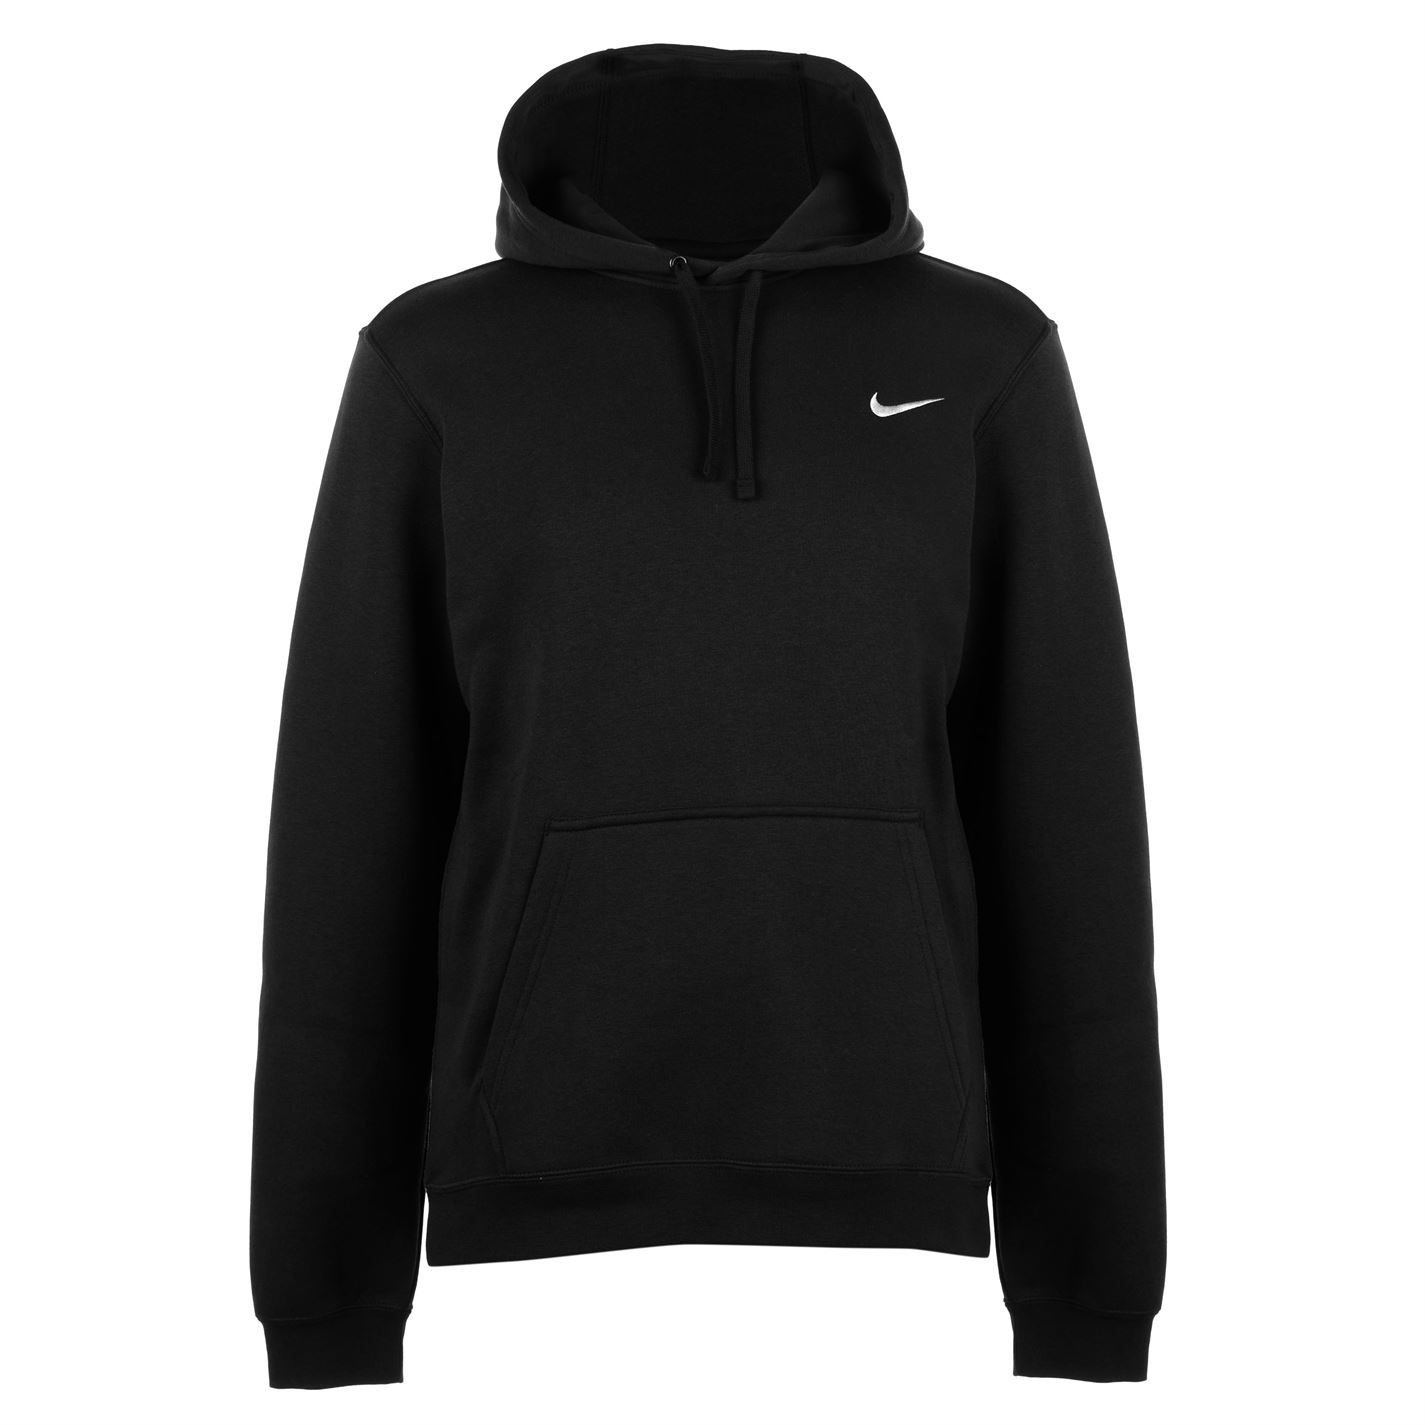 Nike-Fundamentals-Fleece-Lined-Pullover-Hoody-Mens-OTH-Hoodie-Sweatshirt-Sweater thumbnail 5